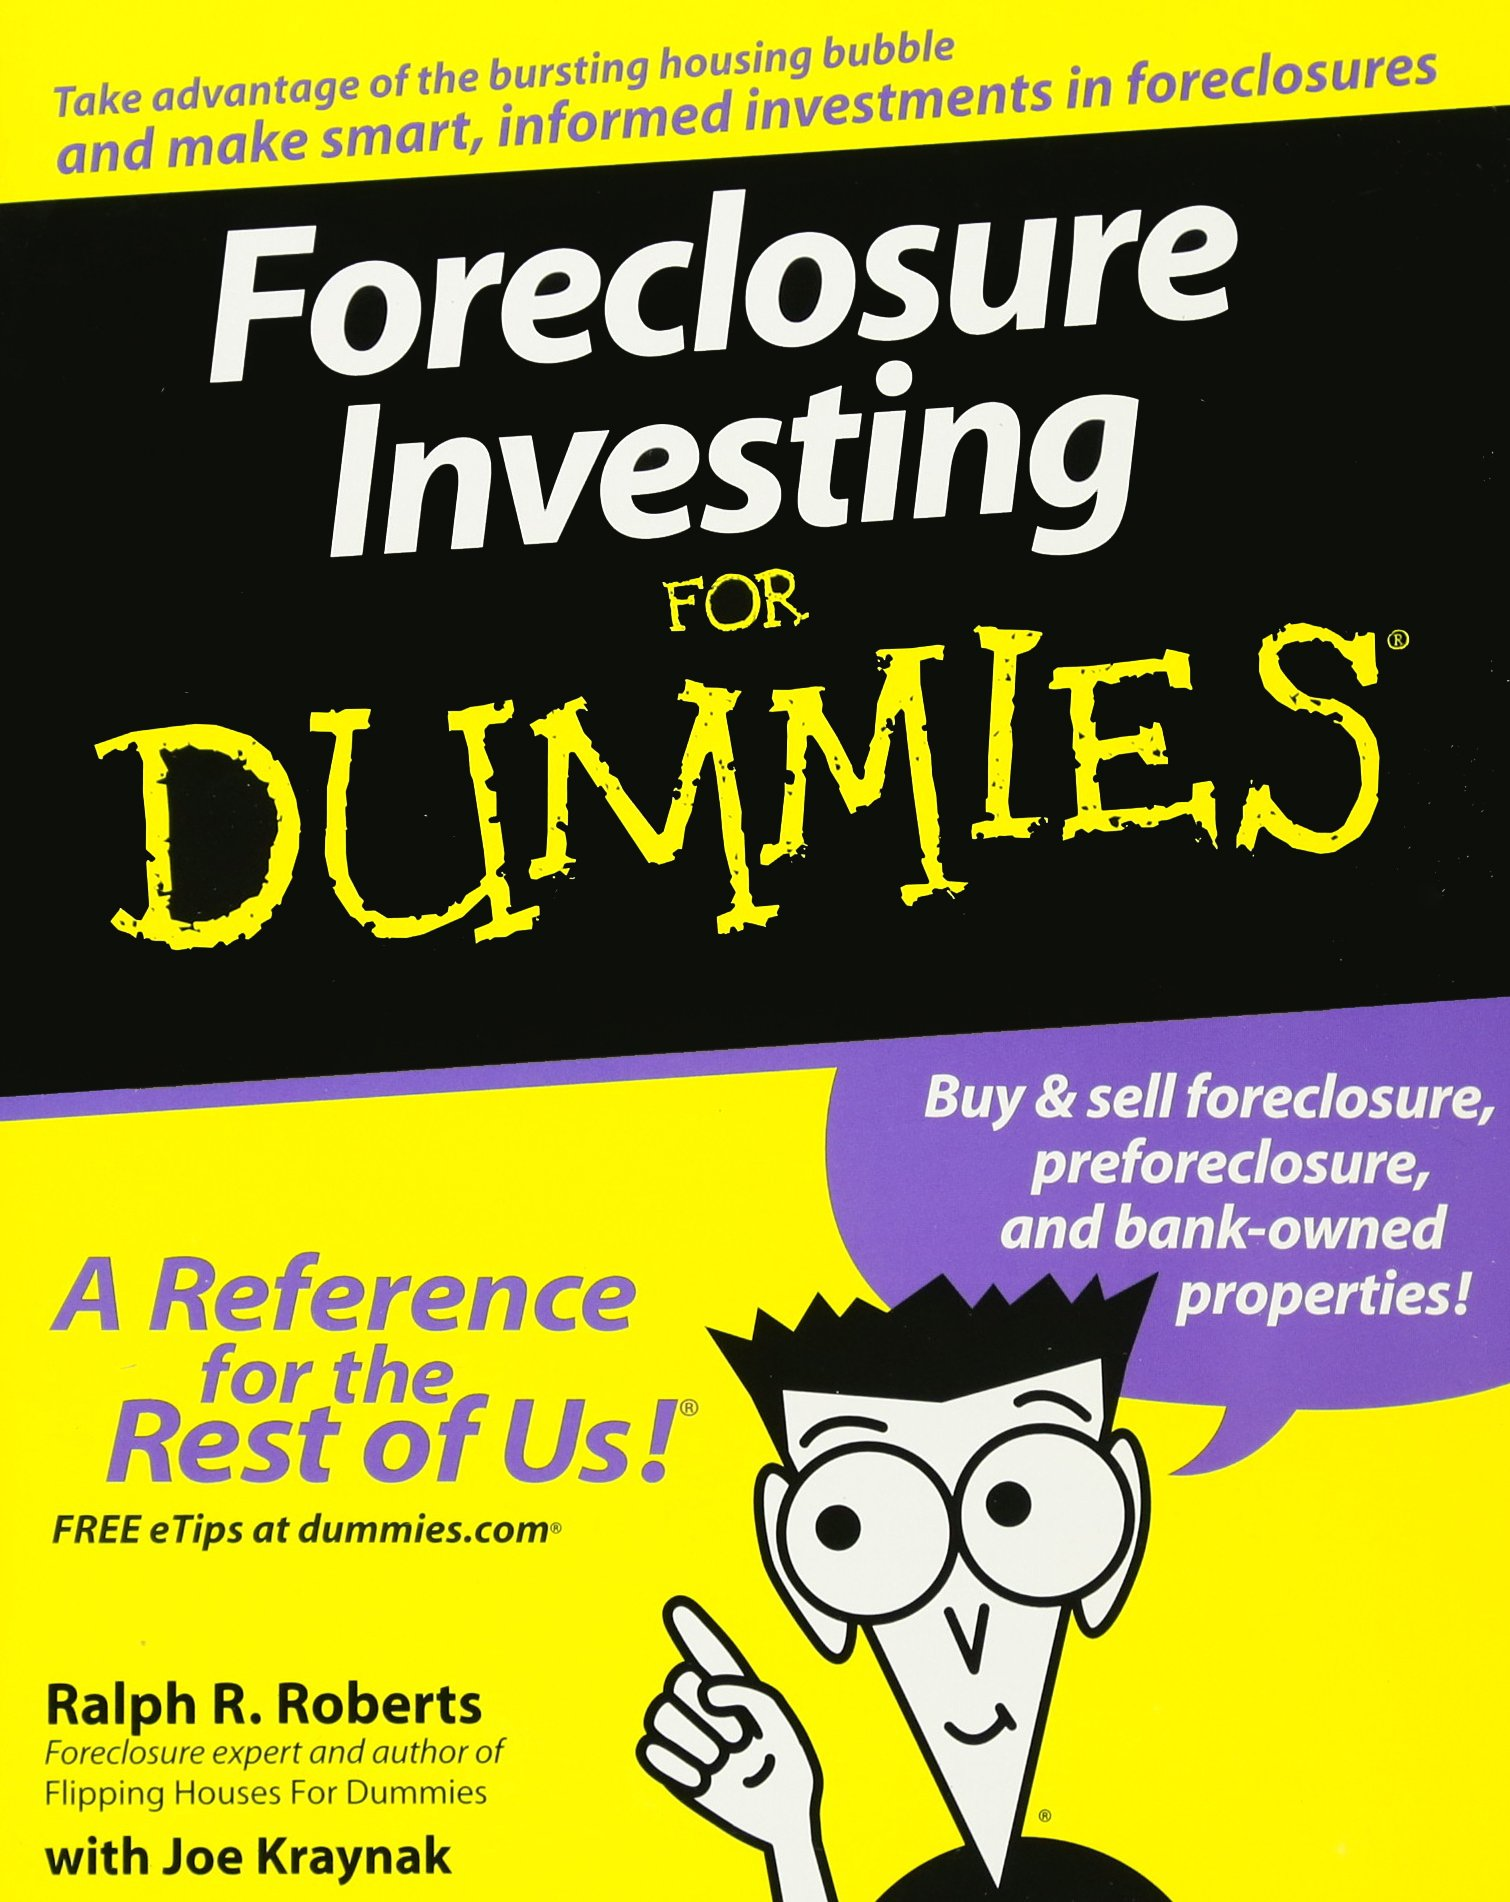 Foreclosure investing for dummies ralph r roberts joseph kraynak foreclosure investing for dummies ralph r roberts joseph kraynak 0785555952089 amazon books fandeluxe Images